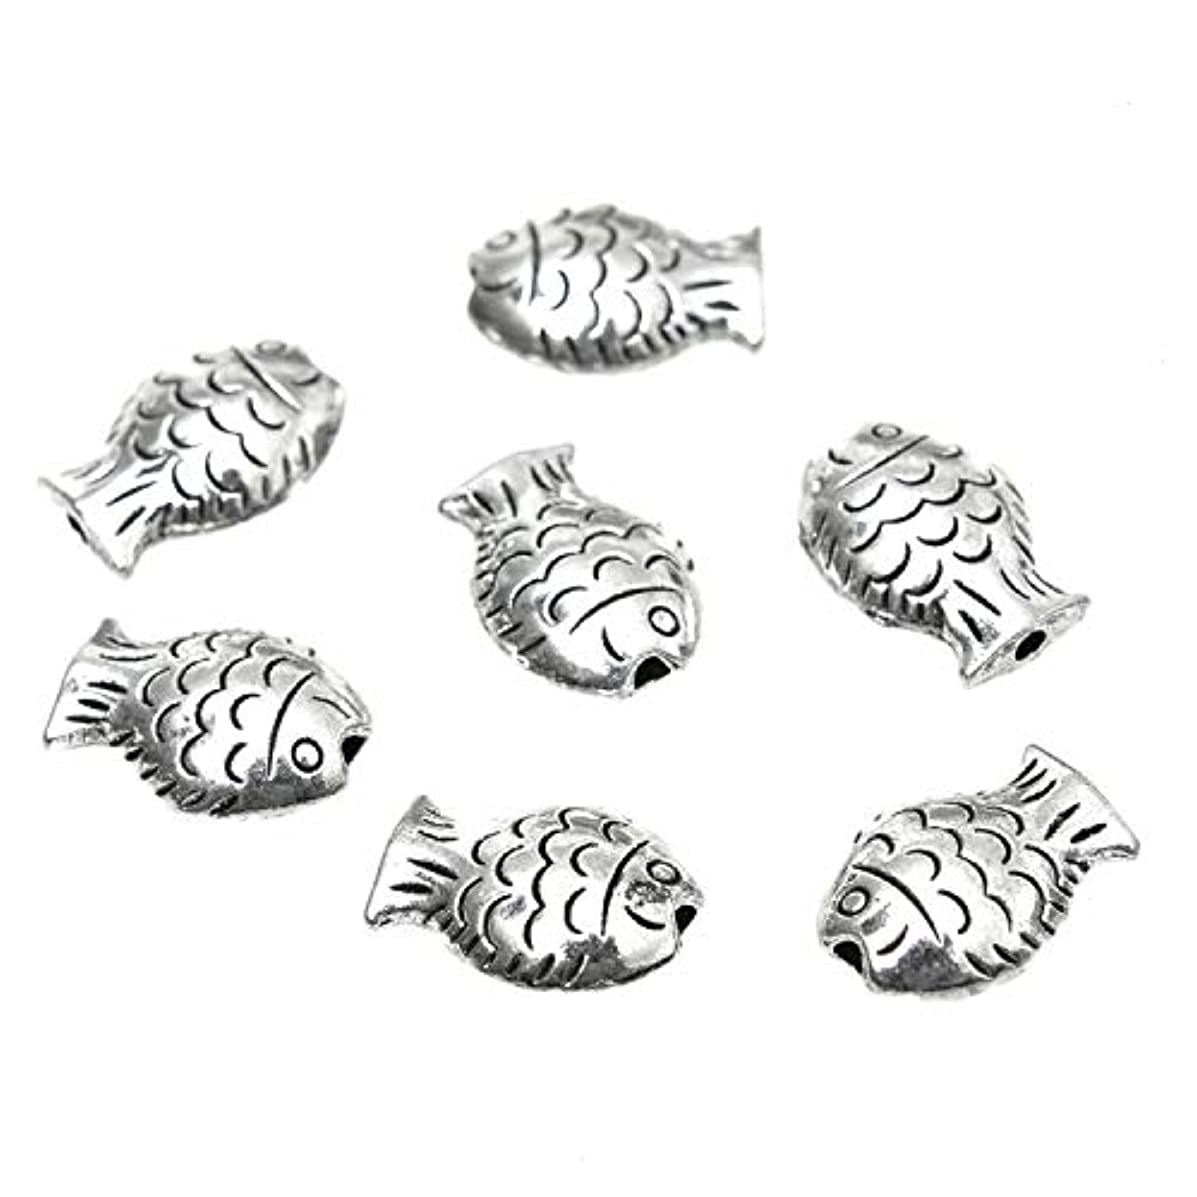 Monrocco 30 PCS Alloy Fish Beads Fish Spacer Beads Fish Charms for for DIY Bracelets Necklace Jewelry Making